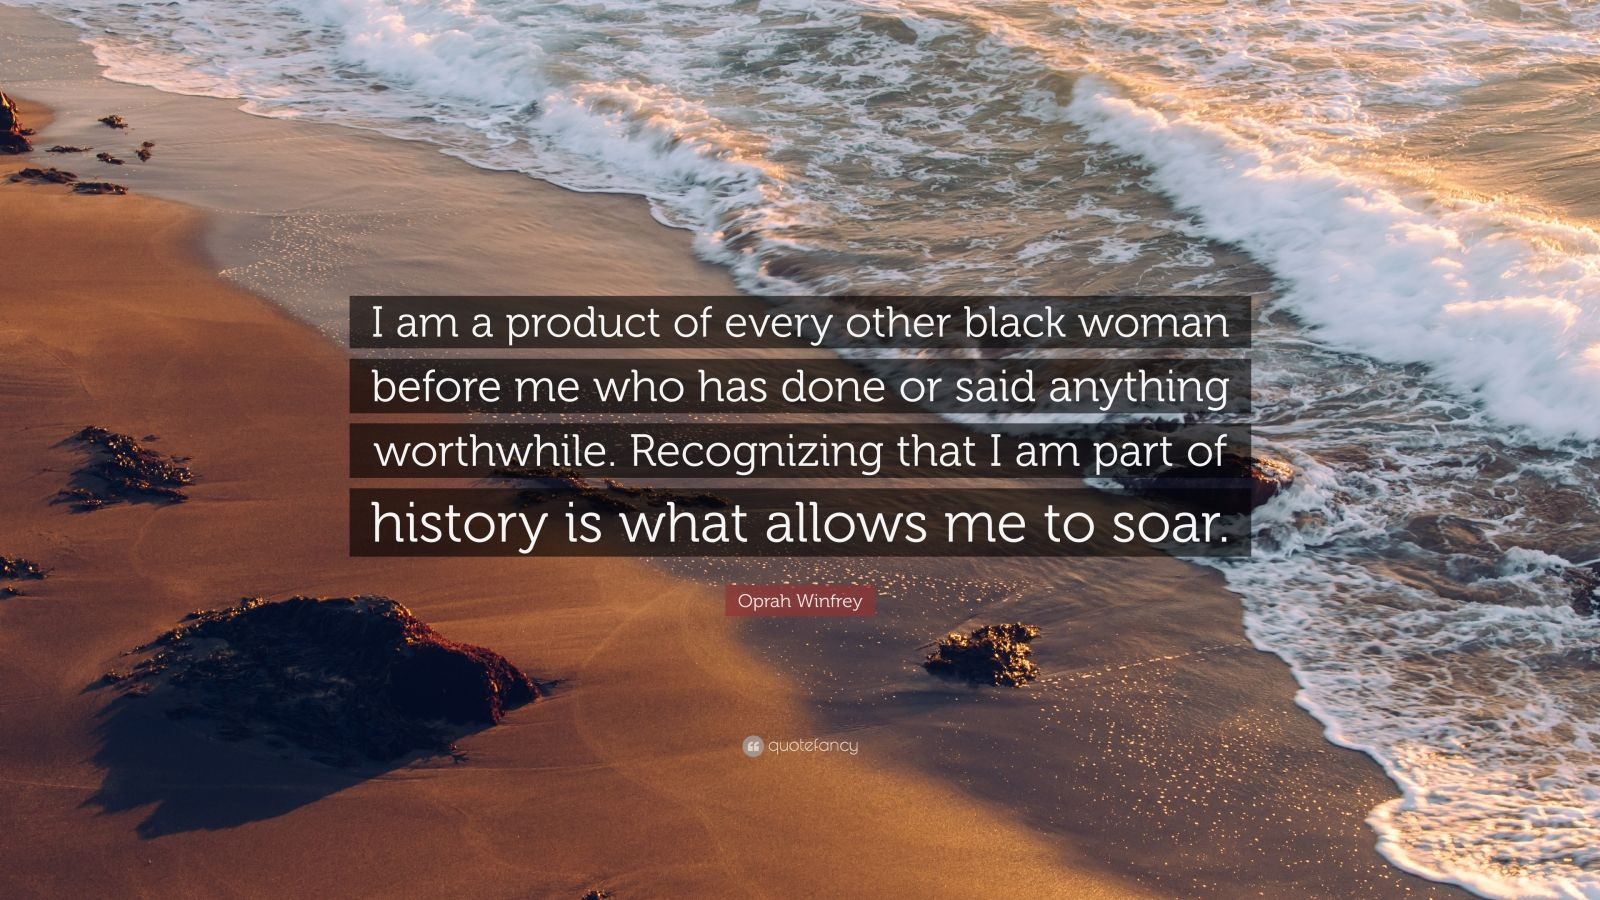 """Oprah Winfrey Quote: """"I am a product of every other black woman before me who has done or said anything worthwhile. Recognizing that I am part of history is what allows me to soar."""""""